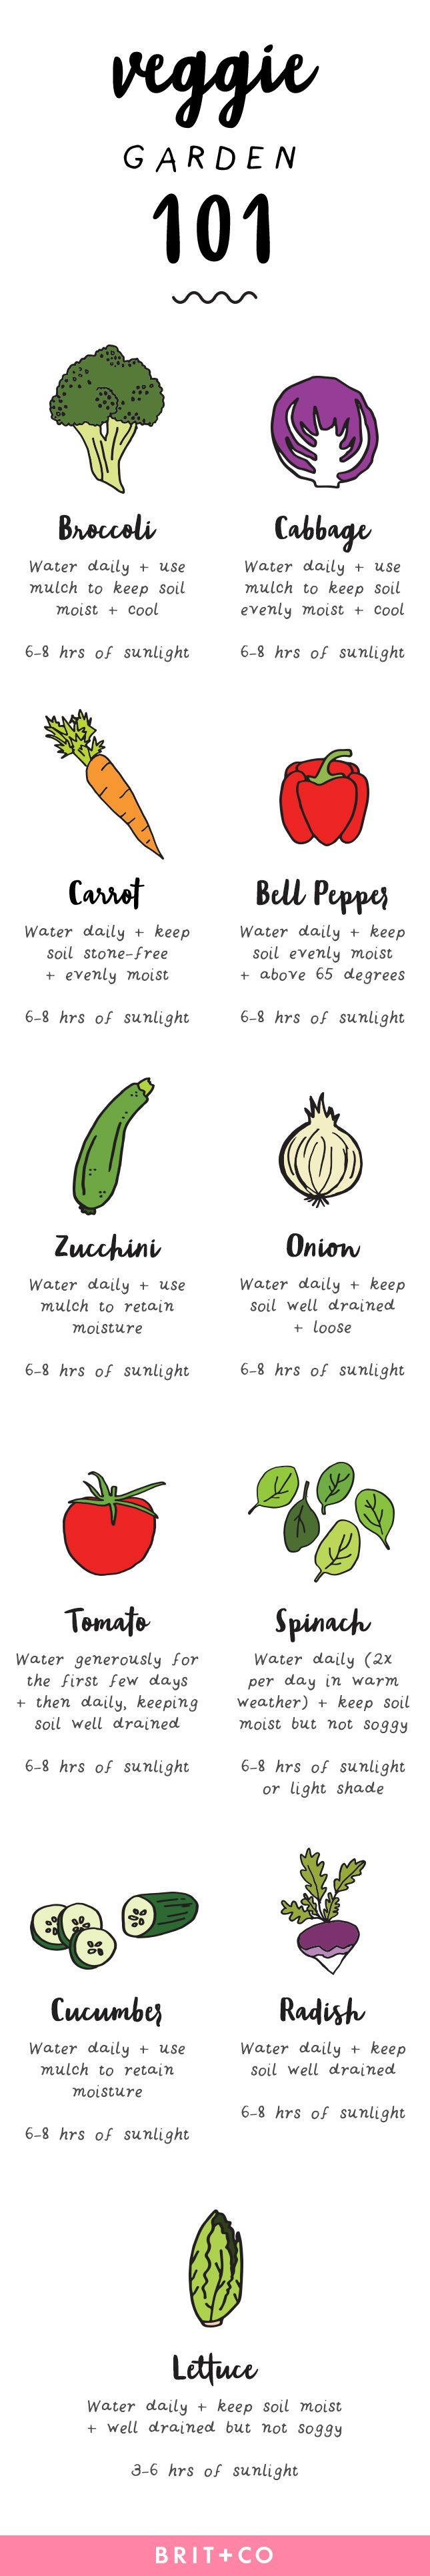 check out this 101 guide for how to plant a veggie garden